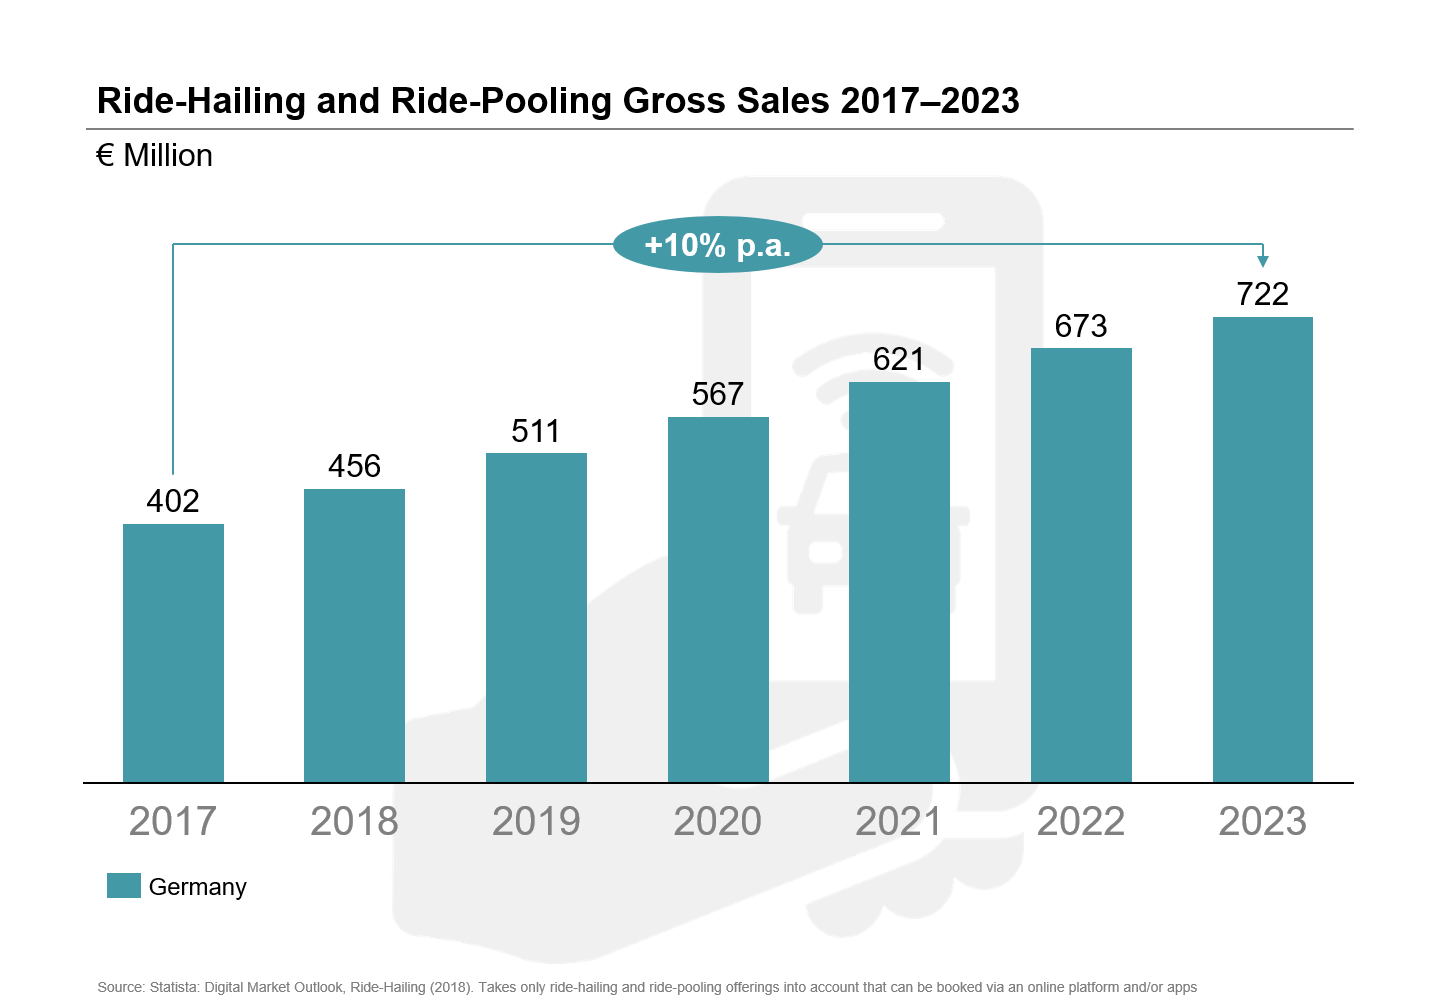 Ride-Hailing and Ride-Pooling